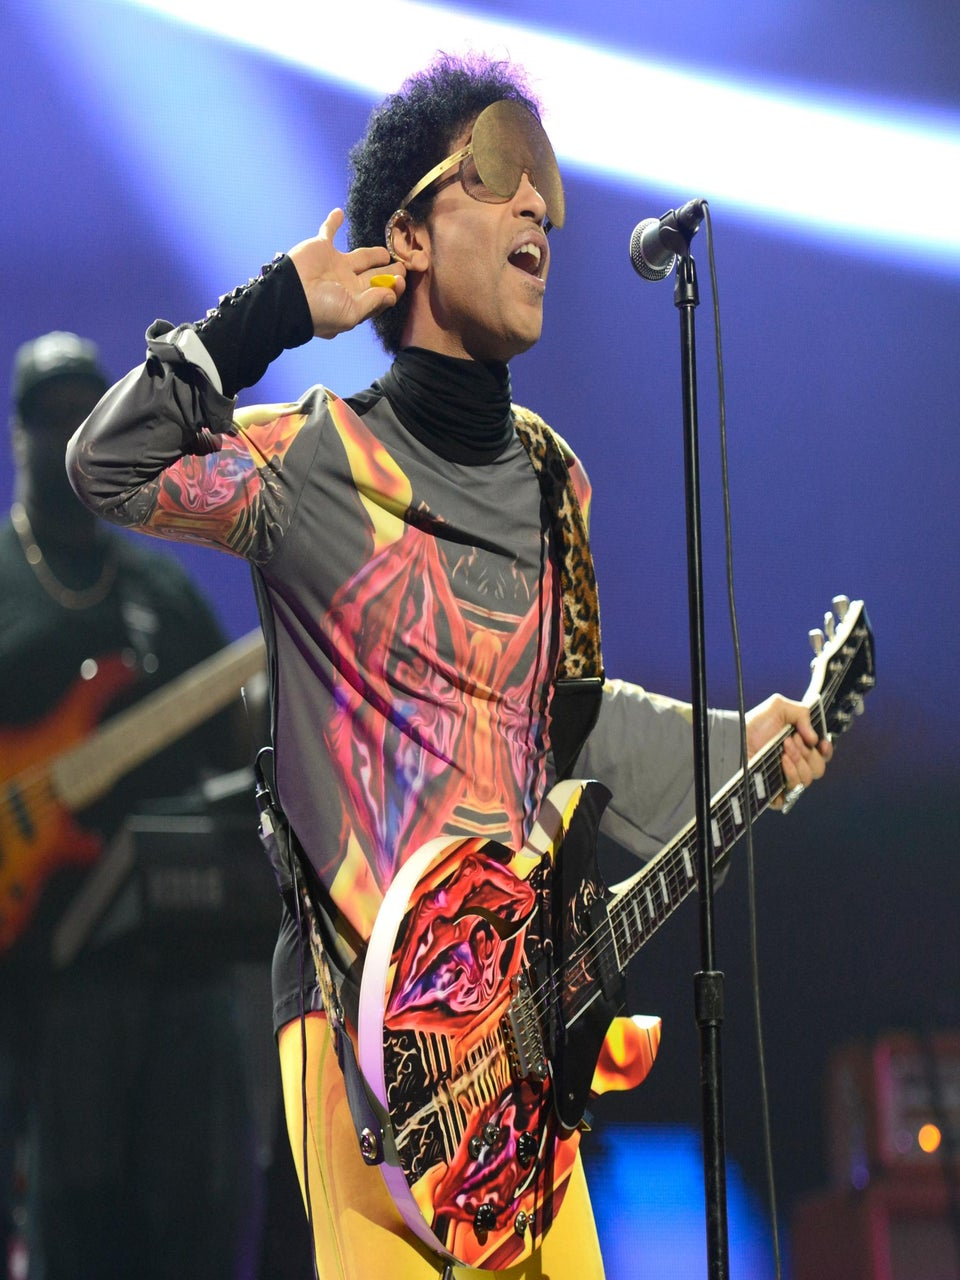 Prince Debuts New Single, and Album, at Listening Session in NYC